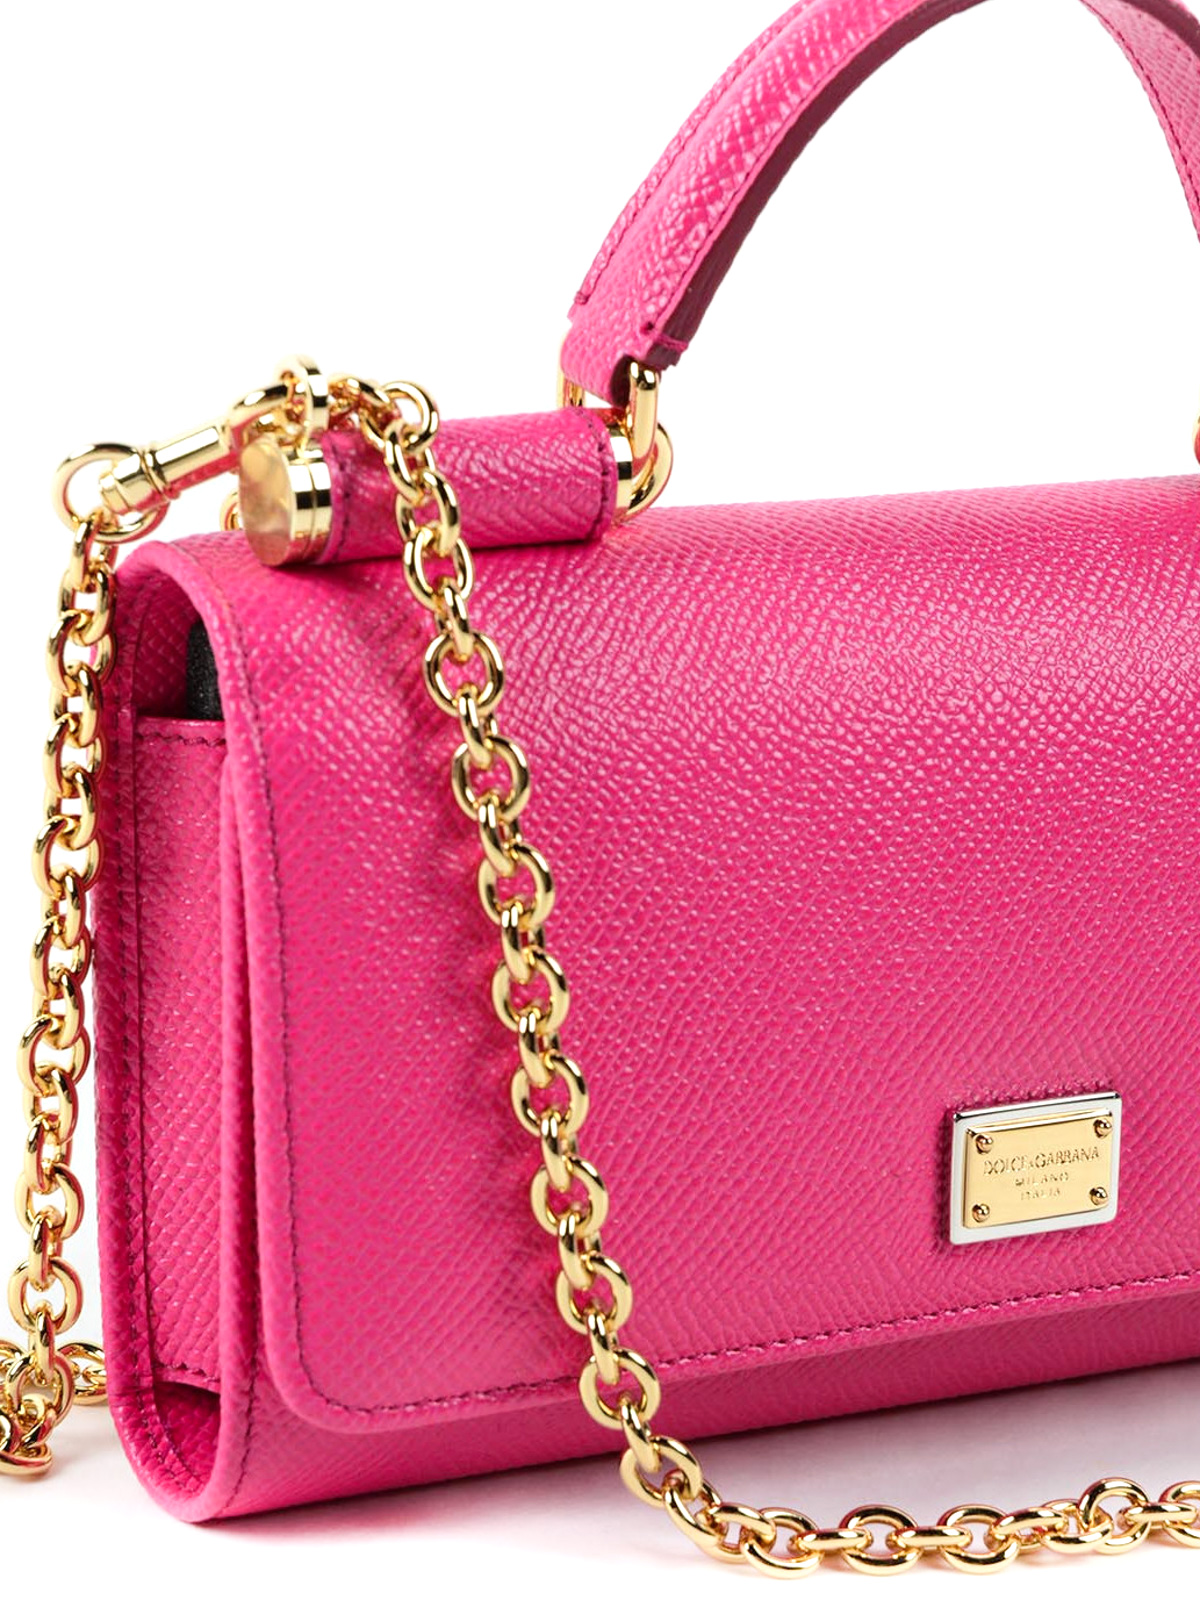 ... Pink Leather Clutches  save off 343d7 b3c77 Dauphine leather phone bag  shop online DOLCE GABBANA ... 9703461209544